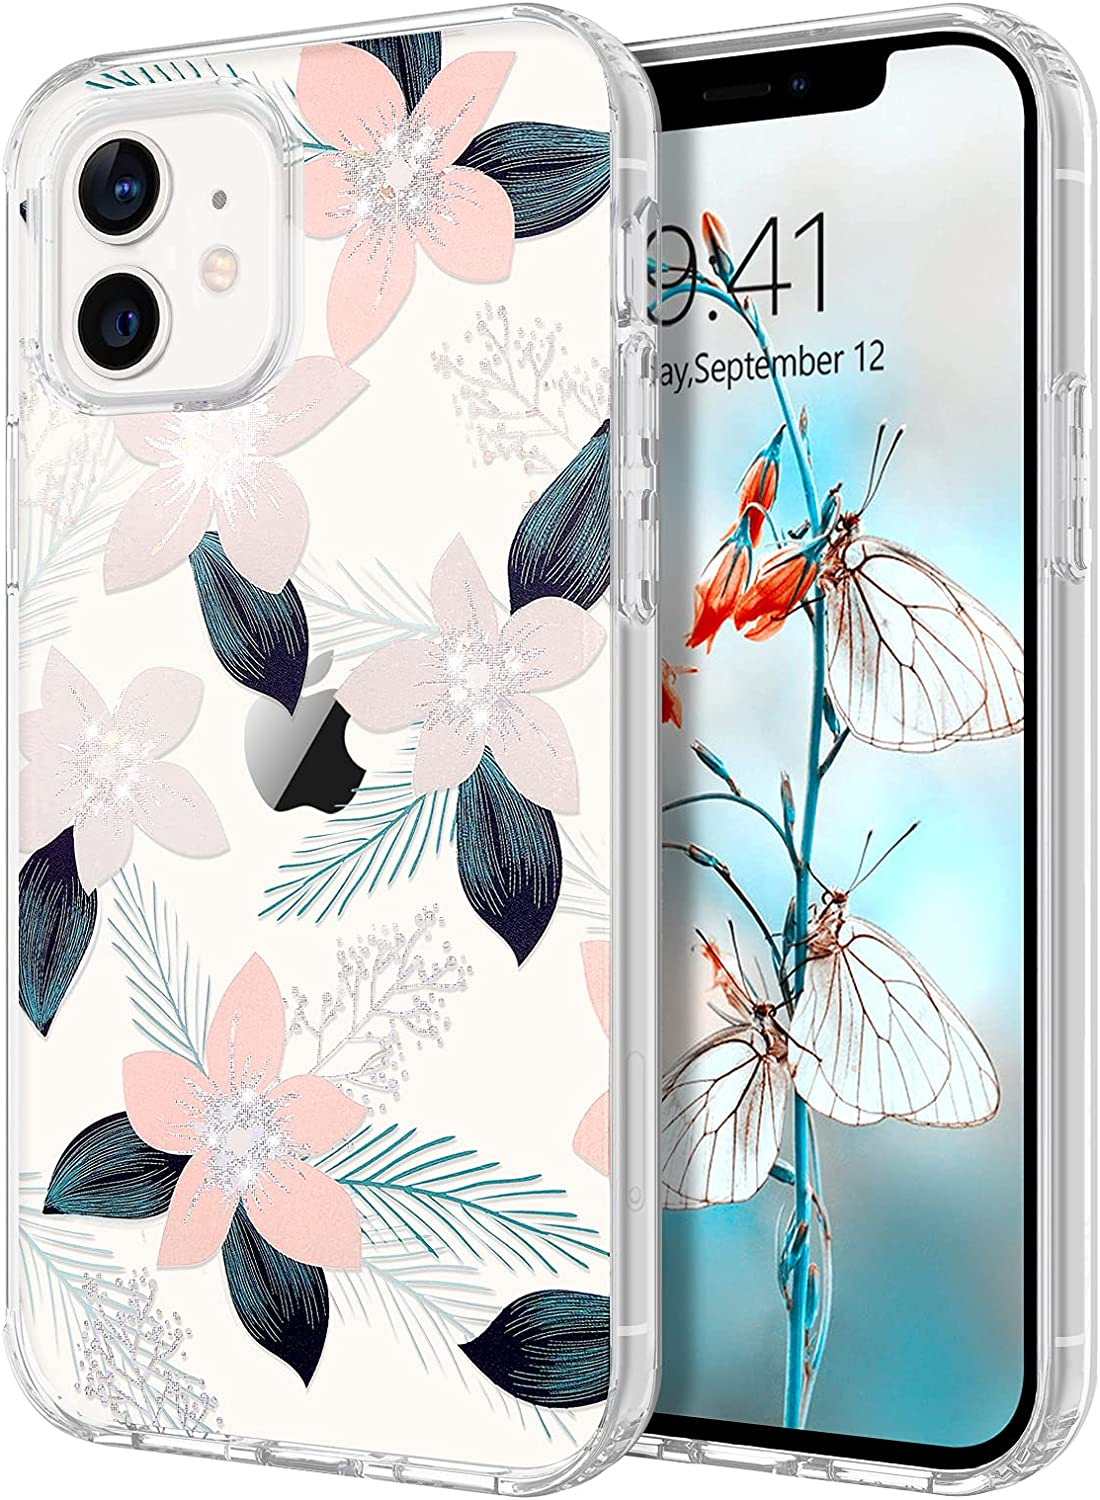 GUAGUA Compatible with iPhone 12 Pro/12 Case 6.1-inch Clear Shiny Pink Flower Pattern Cover for Girls Women Slim Lightweight Hard PC Protective Transparent Floral Design Case for iPhone 12/12 Pro